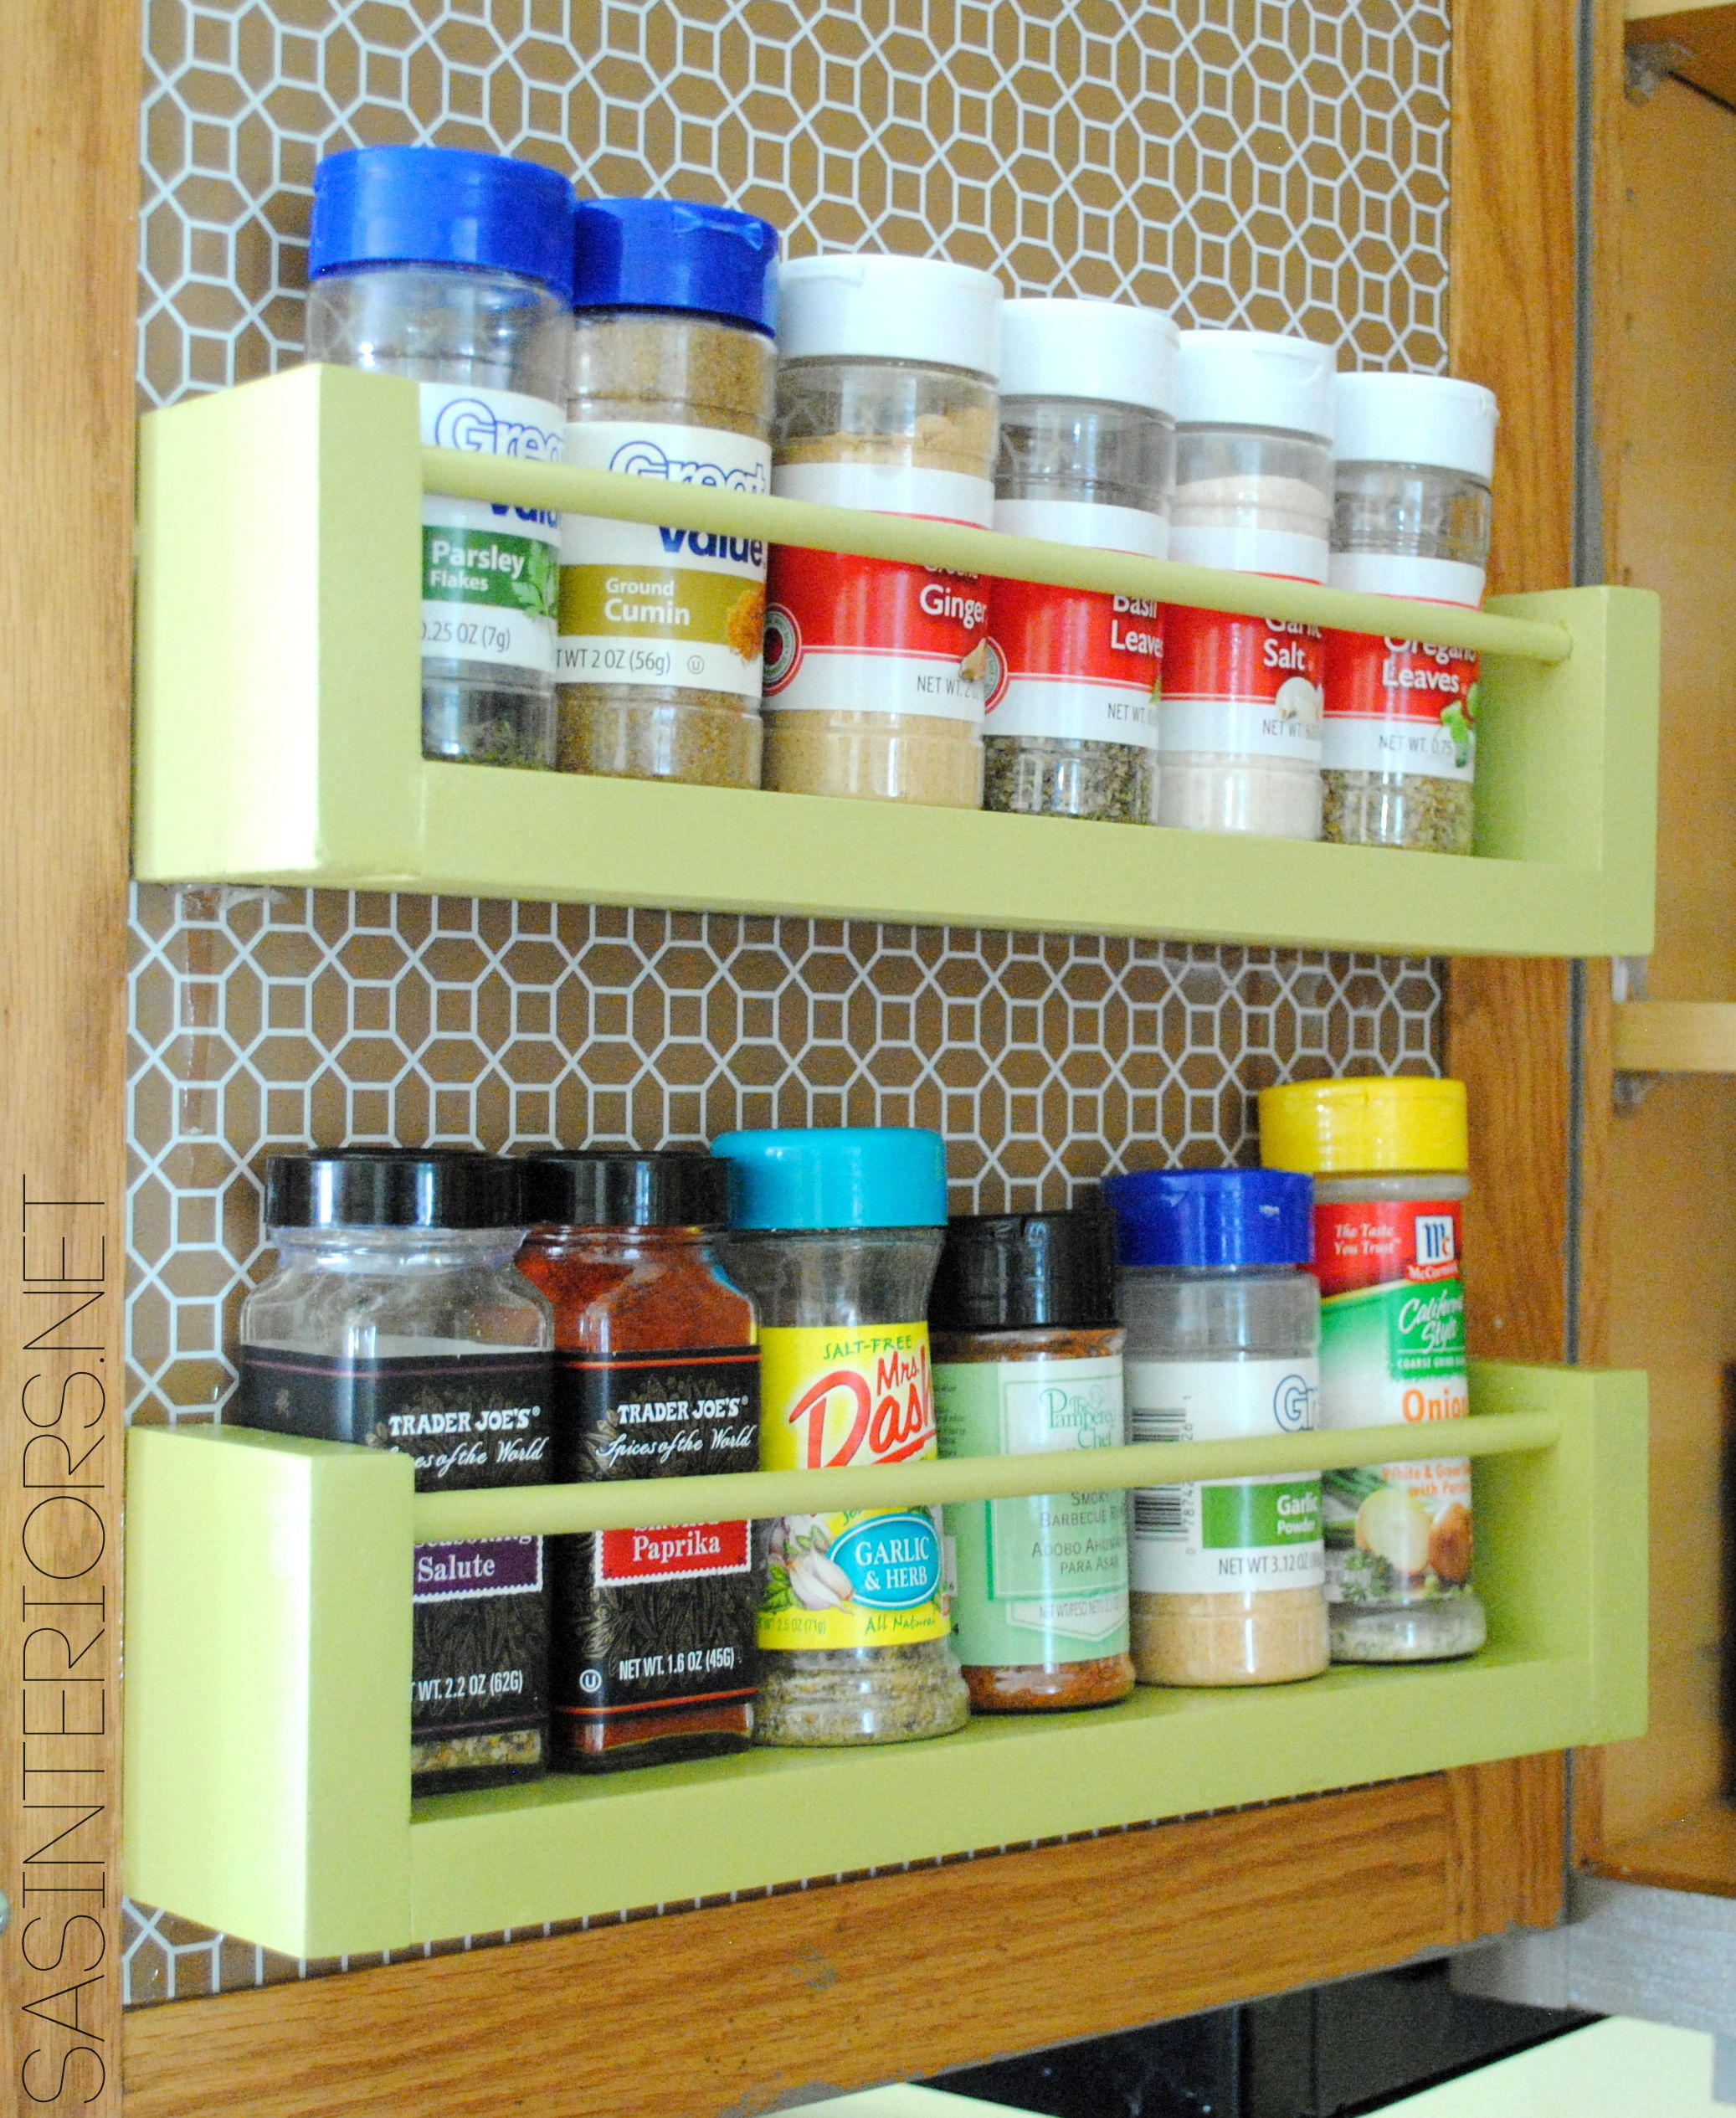 Kitchen Organization Ideas For Storage On The Inside Of Cabinets By Jenna Burger